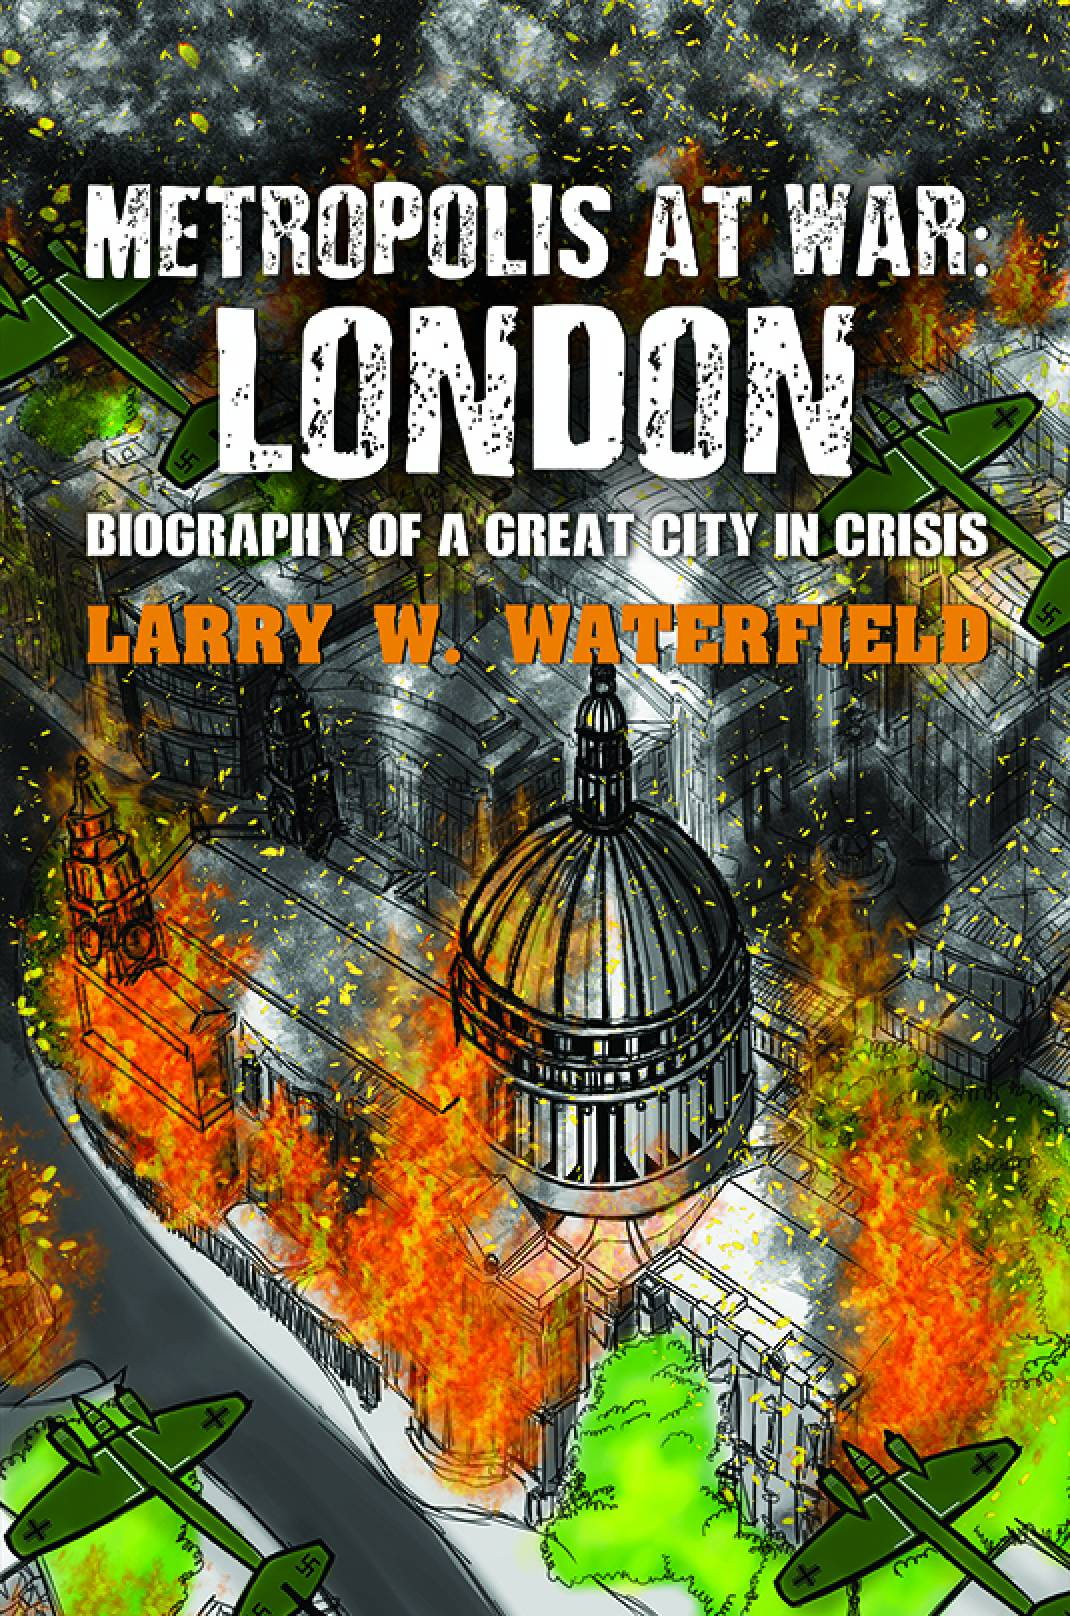 The Metropolis at War: London by Larry W. Waterfield travel product recommended by Ryan Kenna on Lifney.